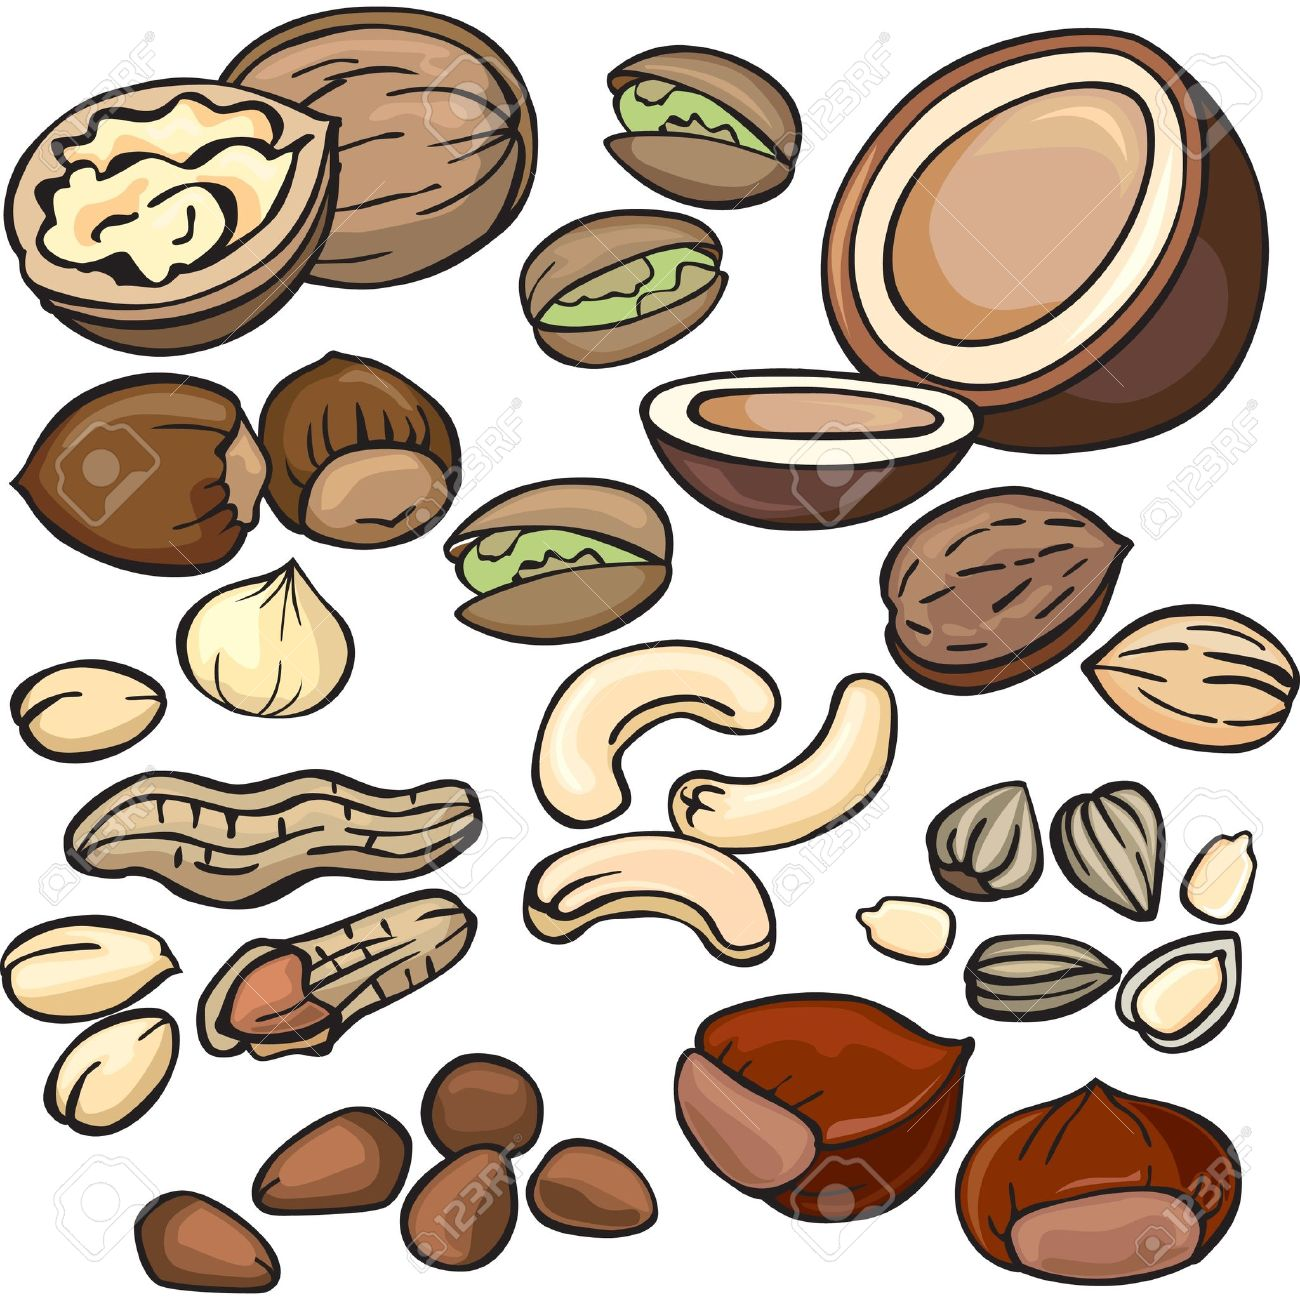 Nut clipart #13, Download drawings